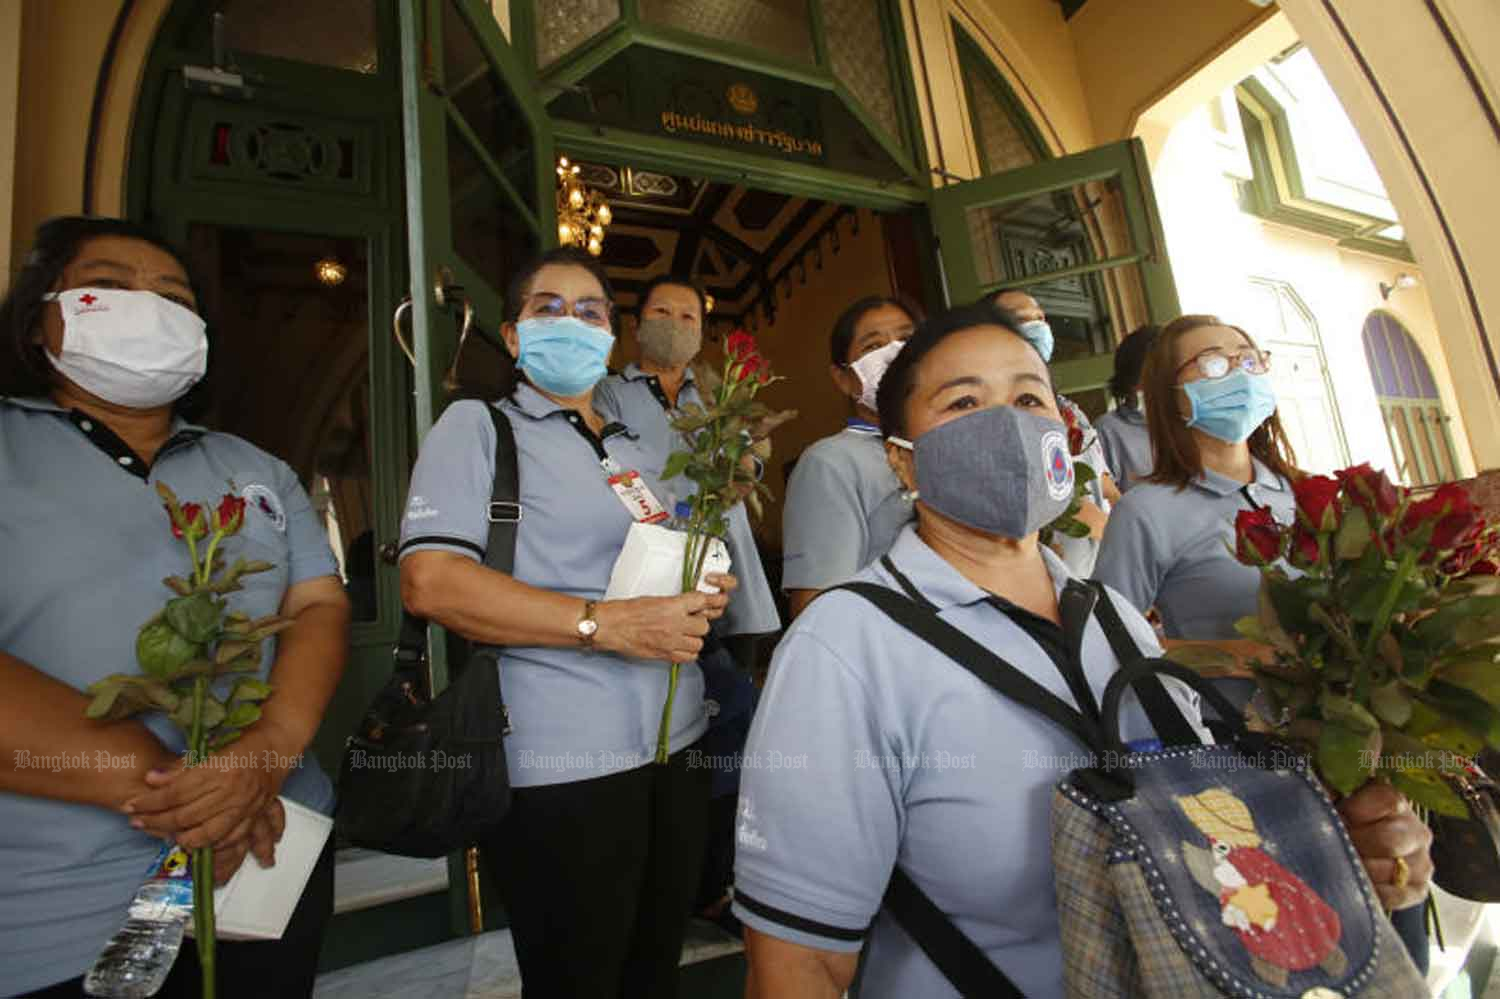 Representatives of village-based health volunteers at Government House in Bangkok to discuss Covid-19-related allowances on Wednesday, when the country logged six new coronavirus cases. (Photo: Pornprom Satrabhaya)